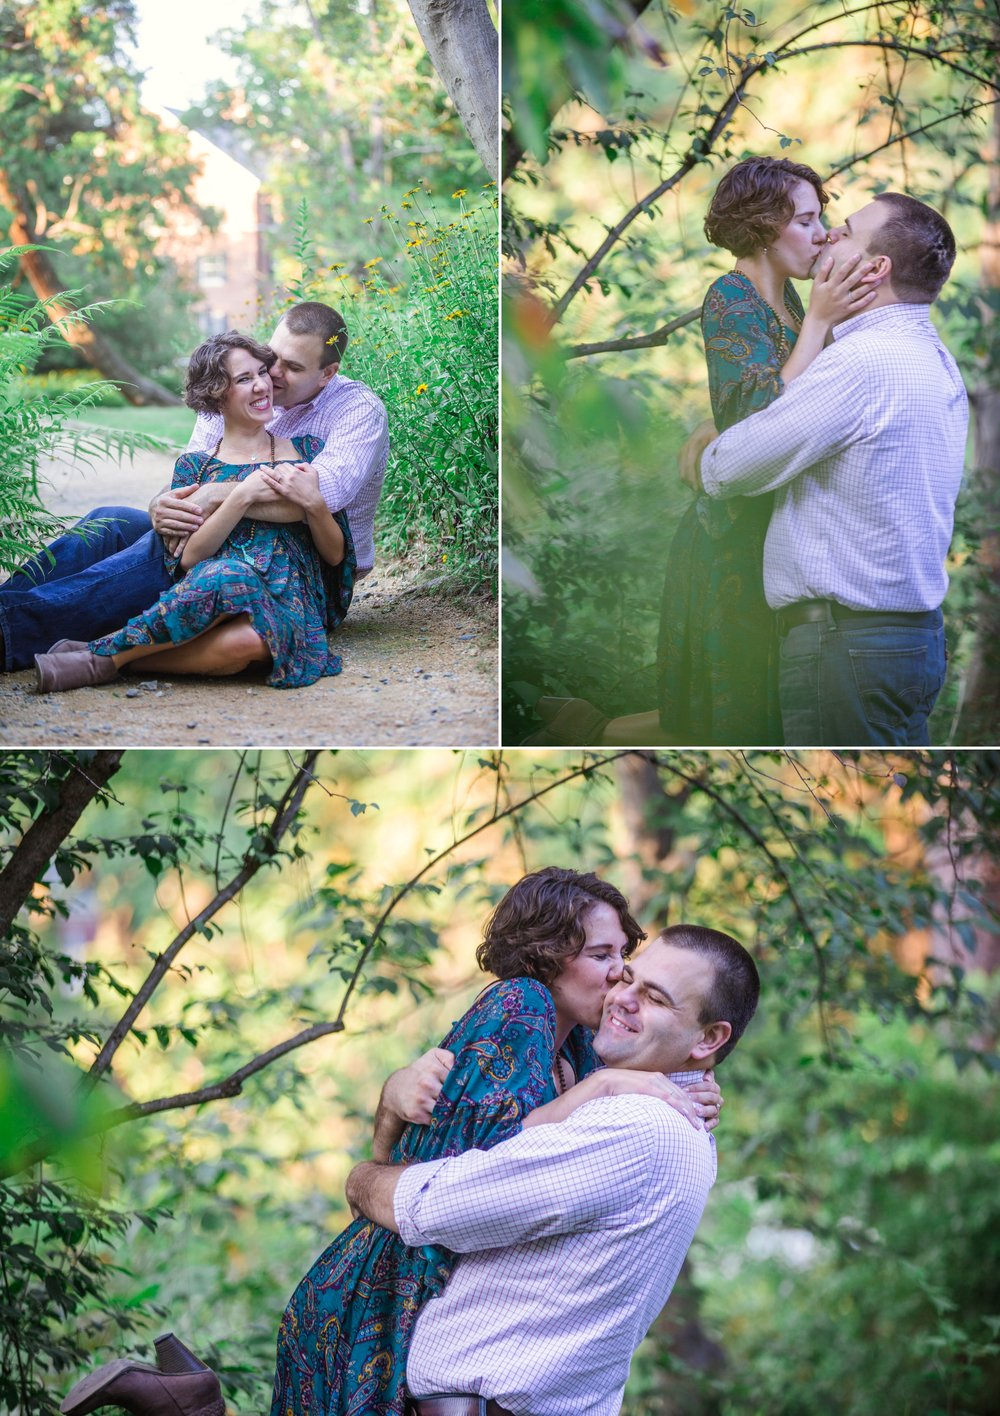 Dani + Adam - Engagement Photography Session at the UNC Chapel Hill Arboretum